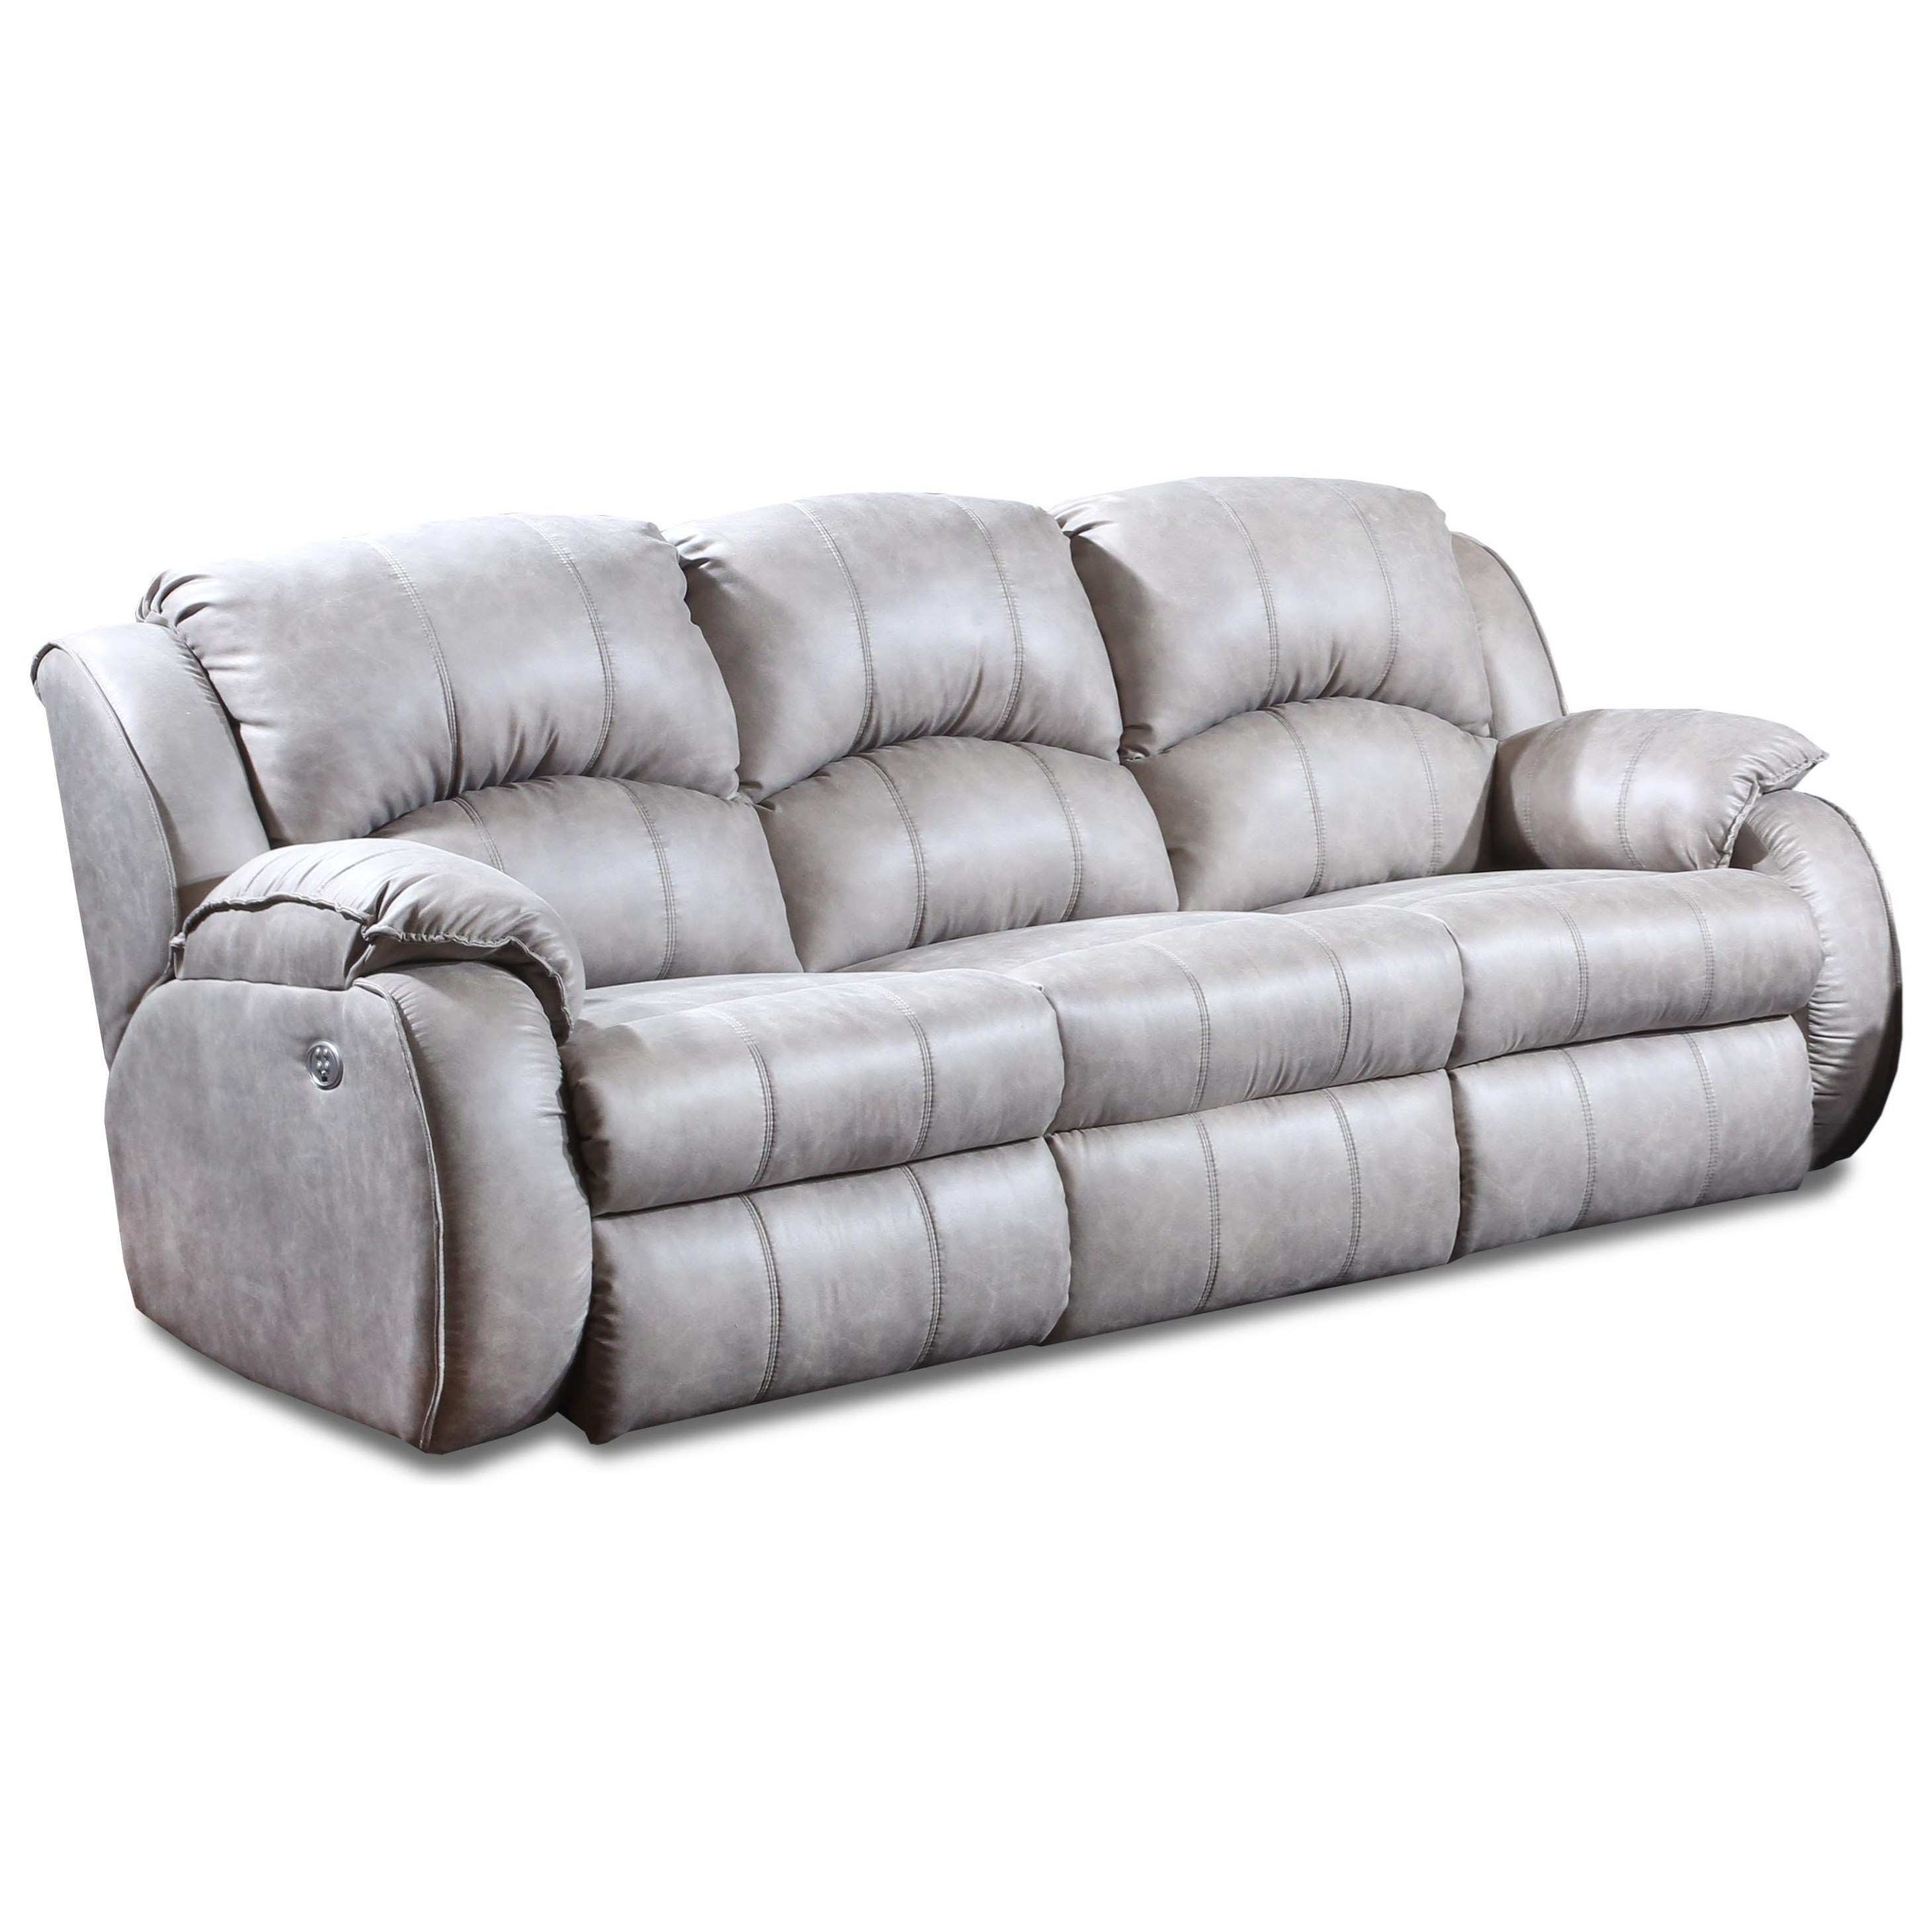 Cagney Power Headrest Reclining Sofa by Southern Motion at Rooms and Rest